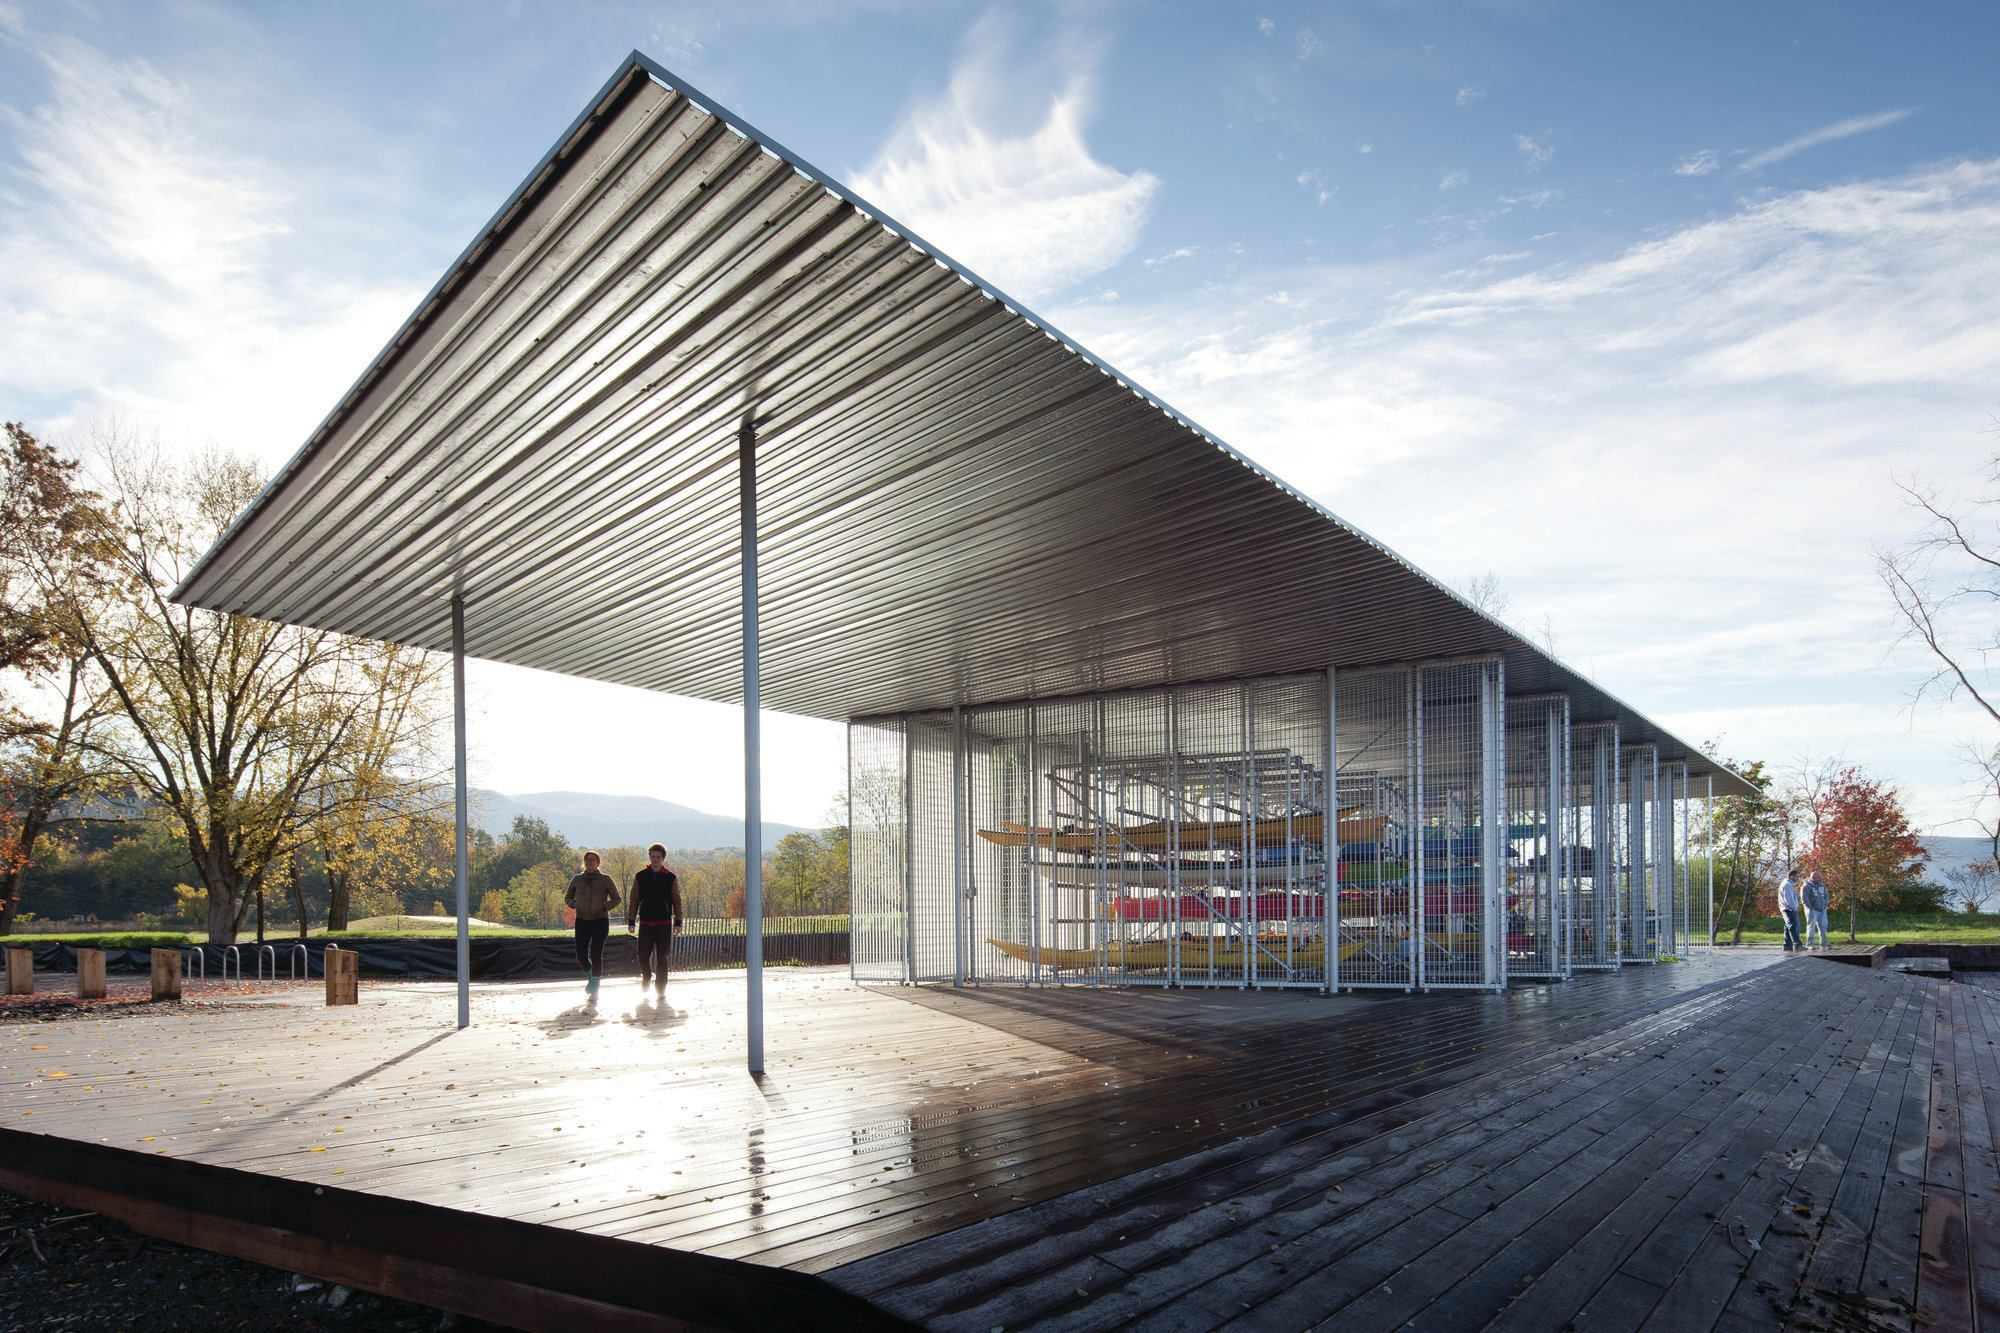 2013 Aia Honor Awards Boat Pavilion For Long Dock Park